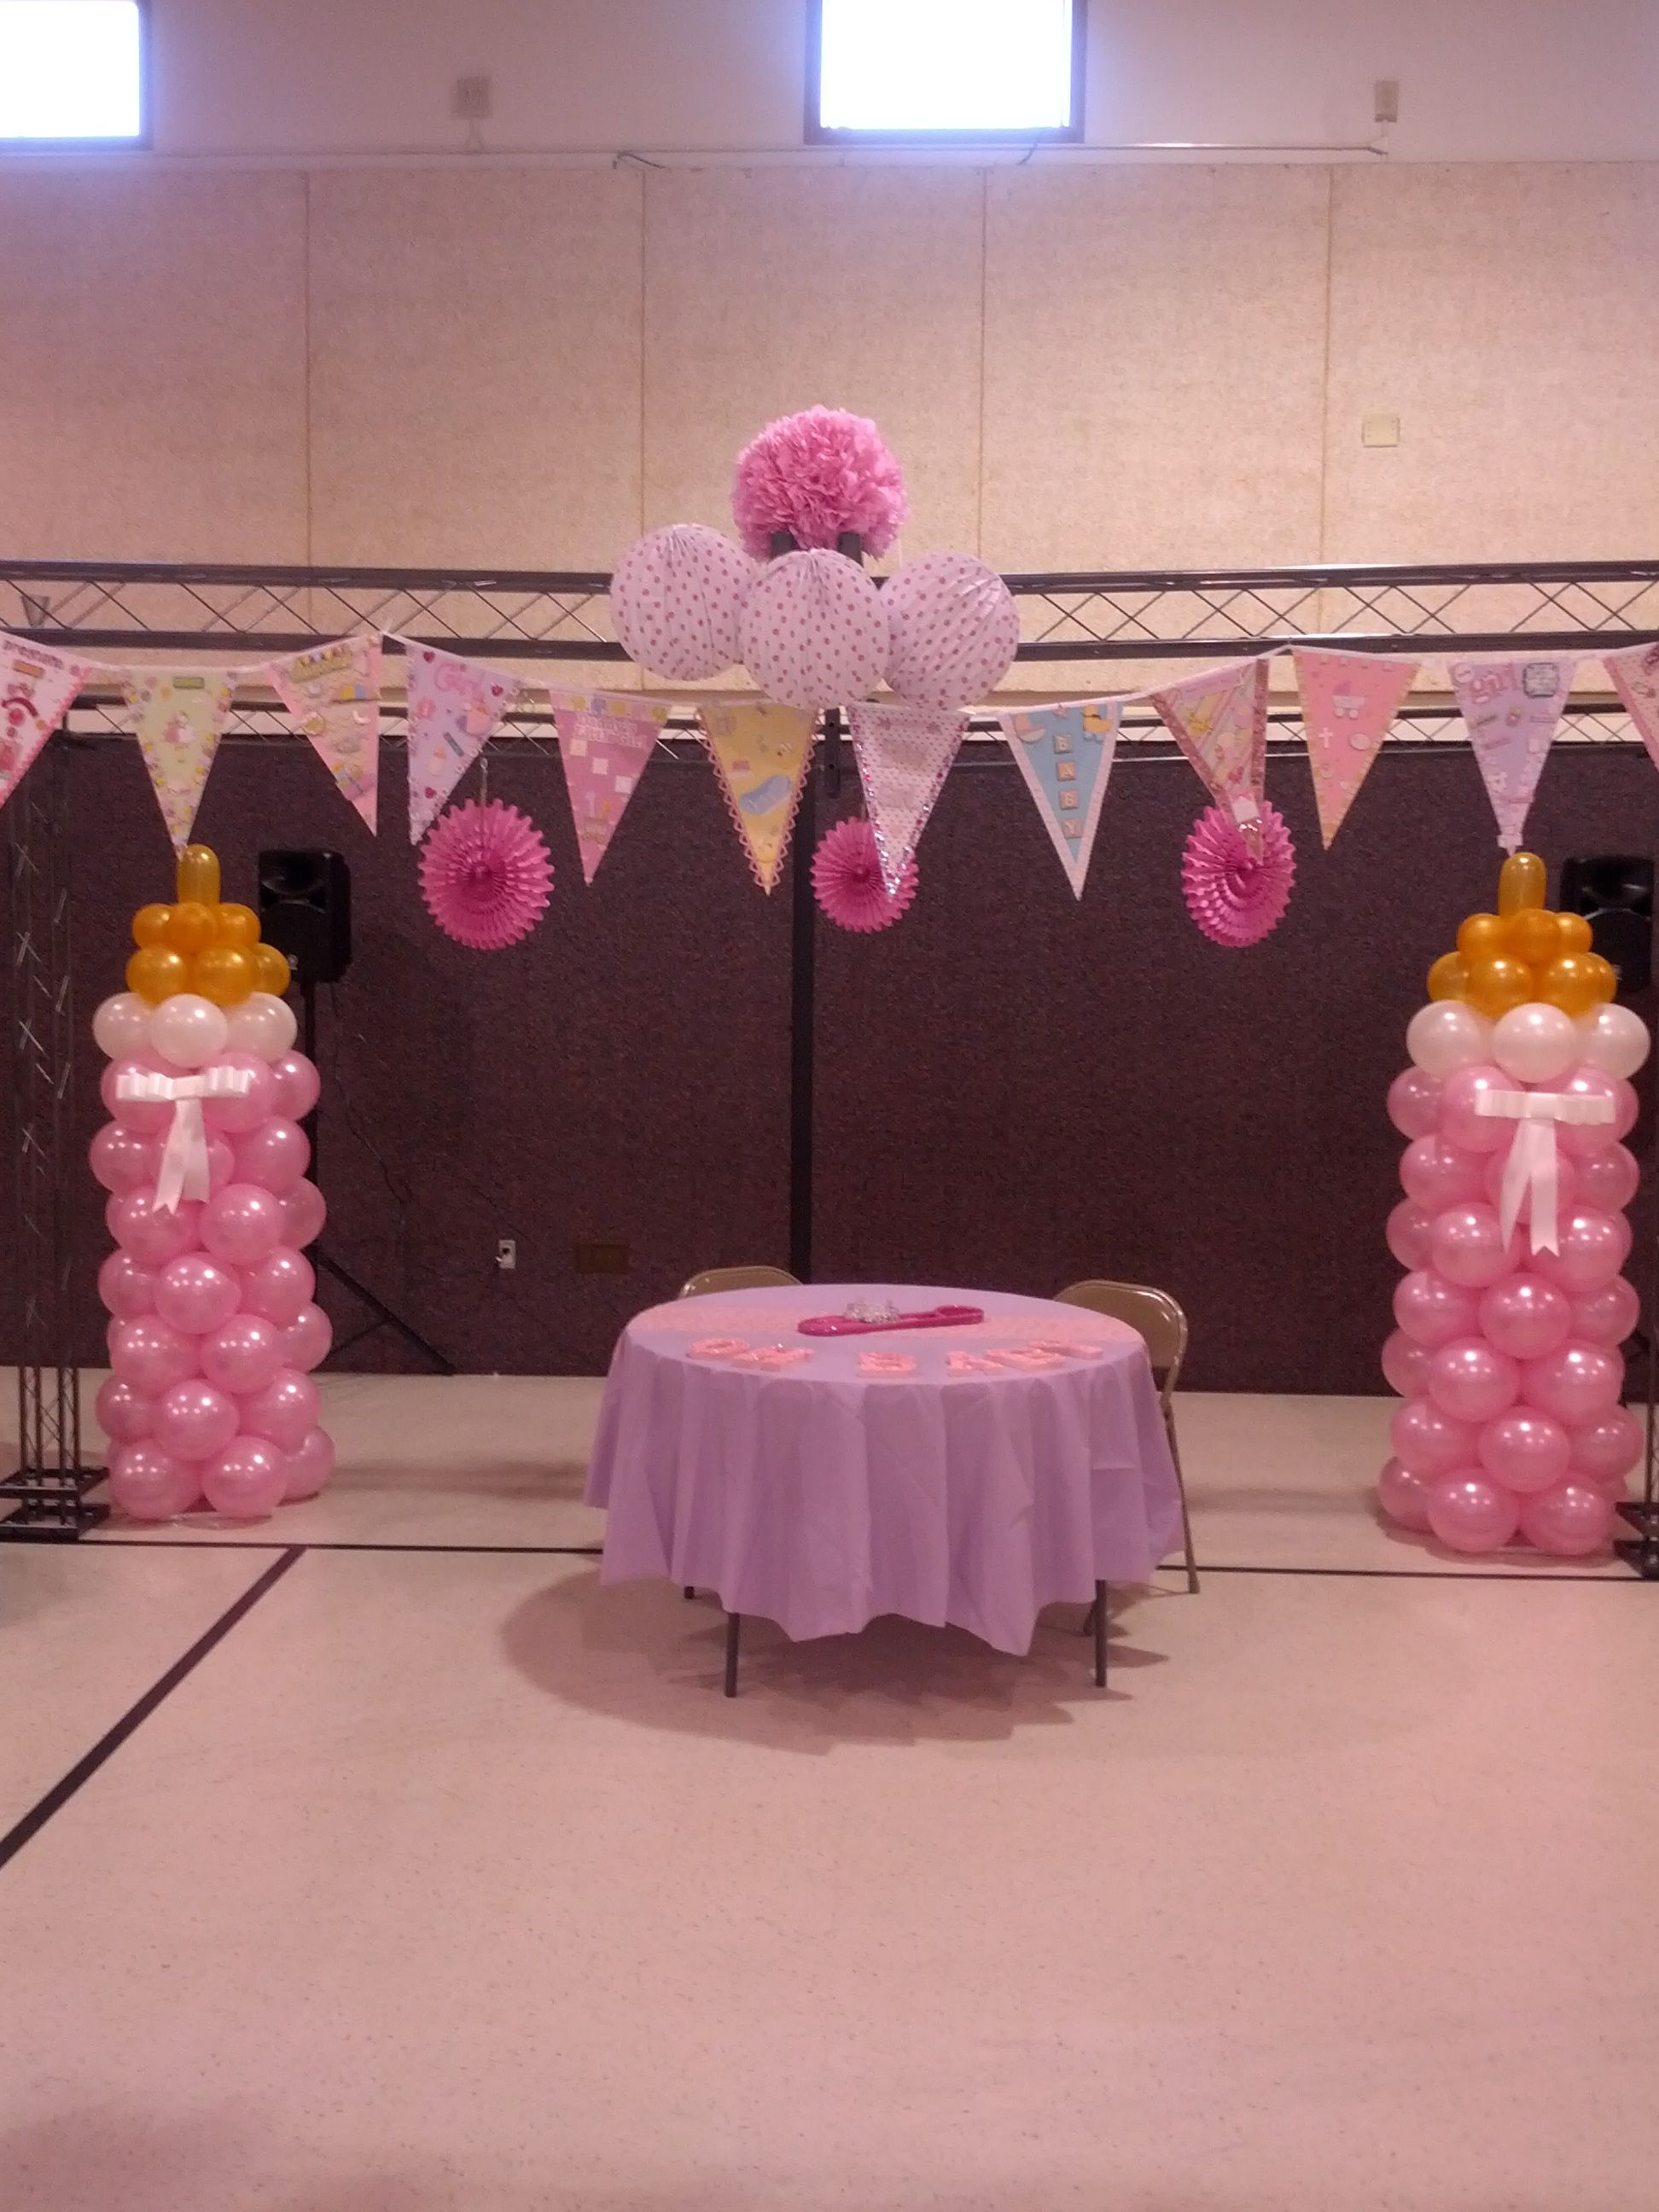 Baby shower balloons baby bottle. | asst balloon decor | Pinterest ...